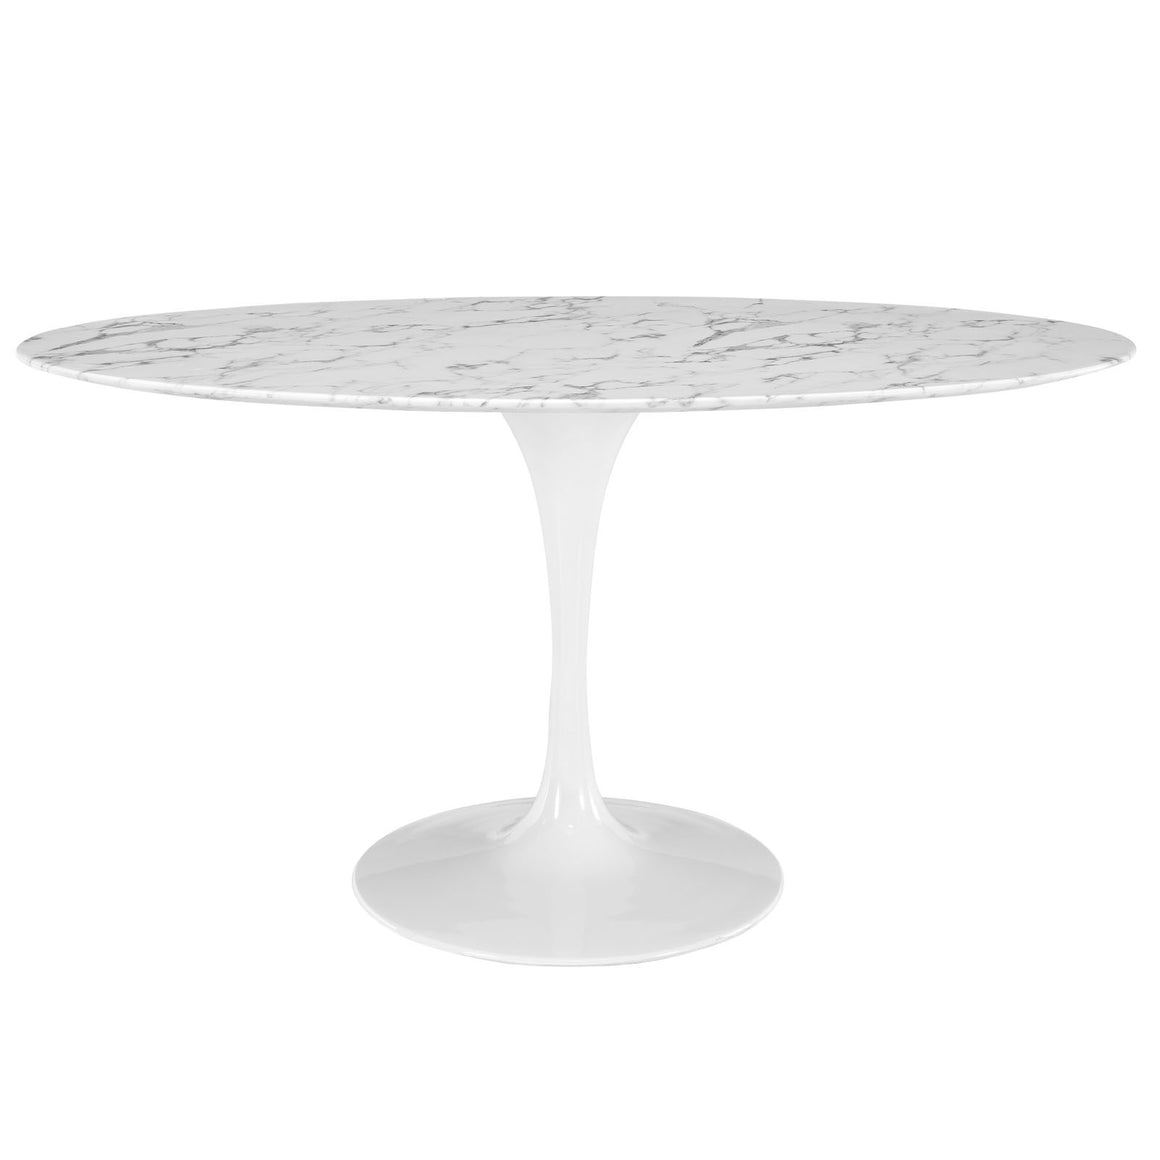 "Lippa 60"" Oval-Shaped Artificial Marble Dining Table - taylor ray decor"